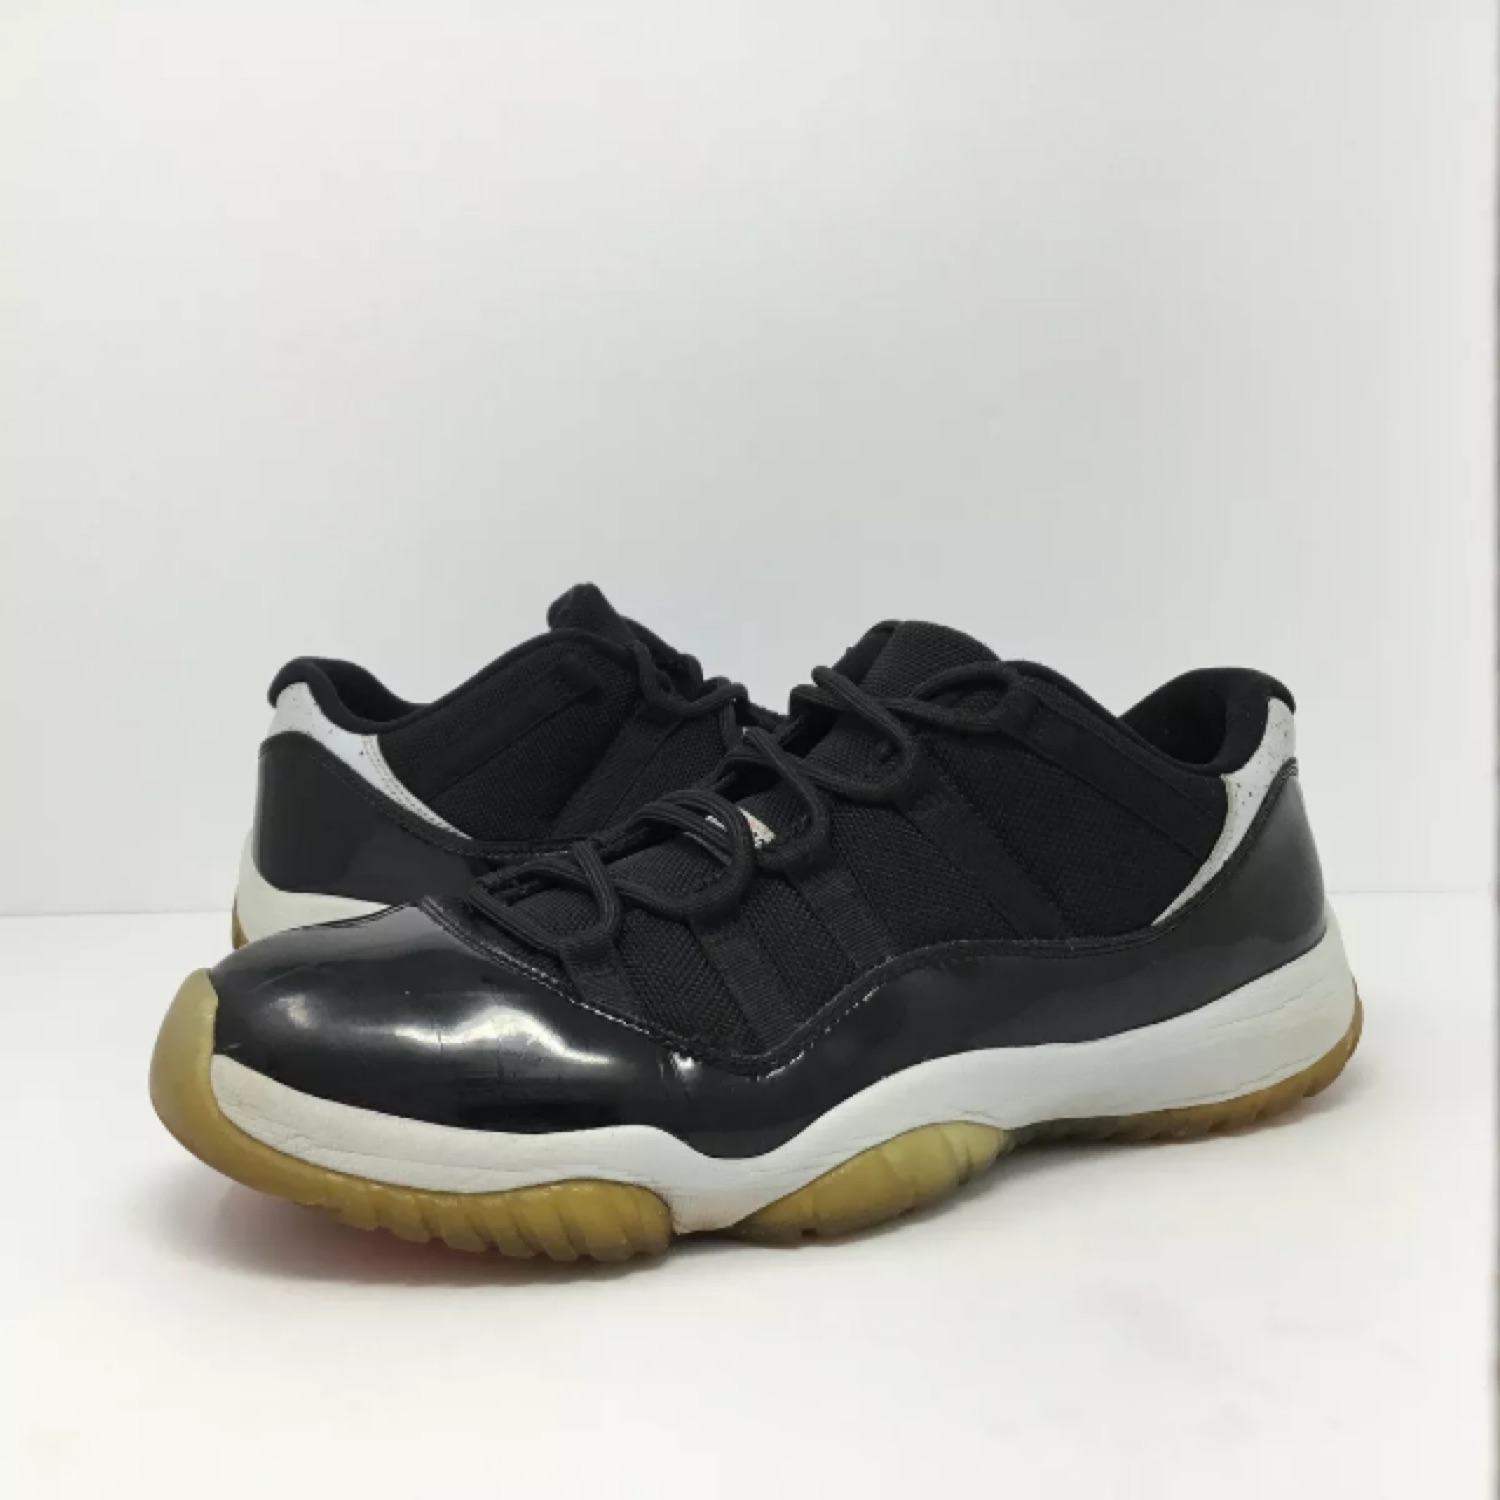 the best attitude 59e03 3bf74 Air Jordan 11 Xi Low Infrared 23 Size 9.5 Used